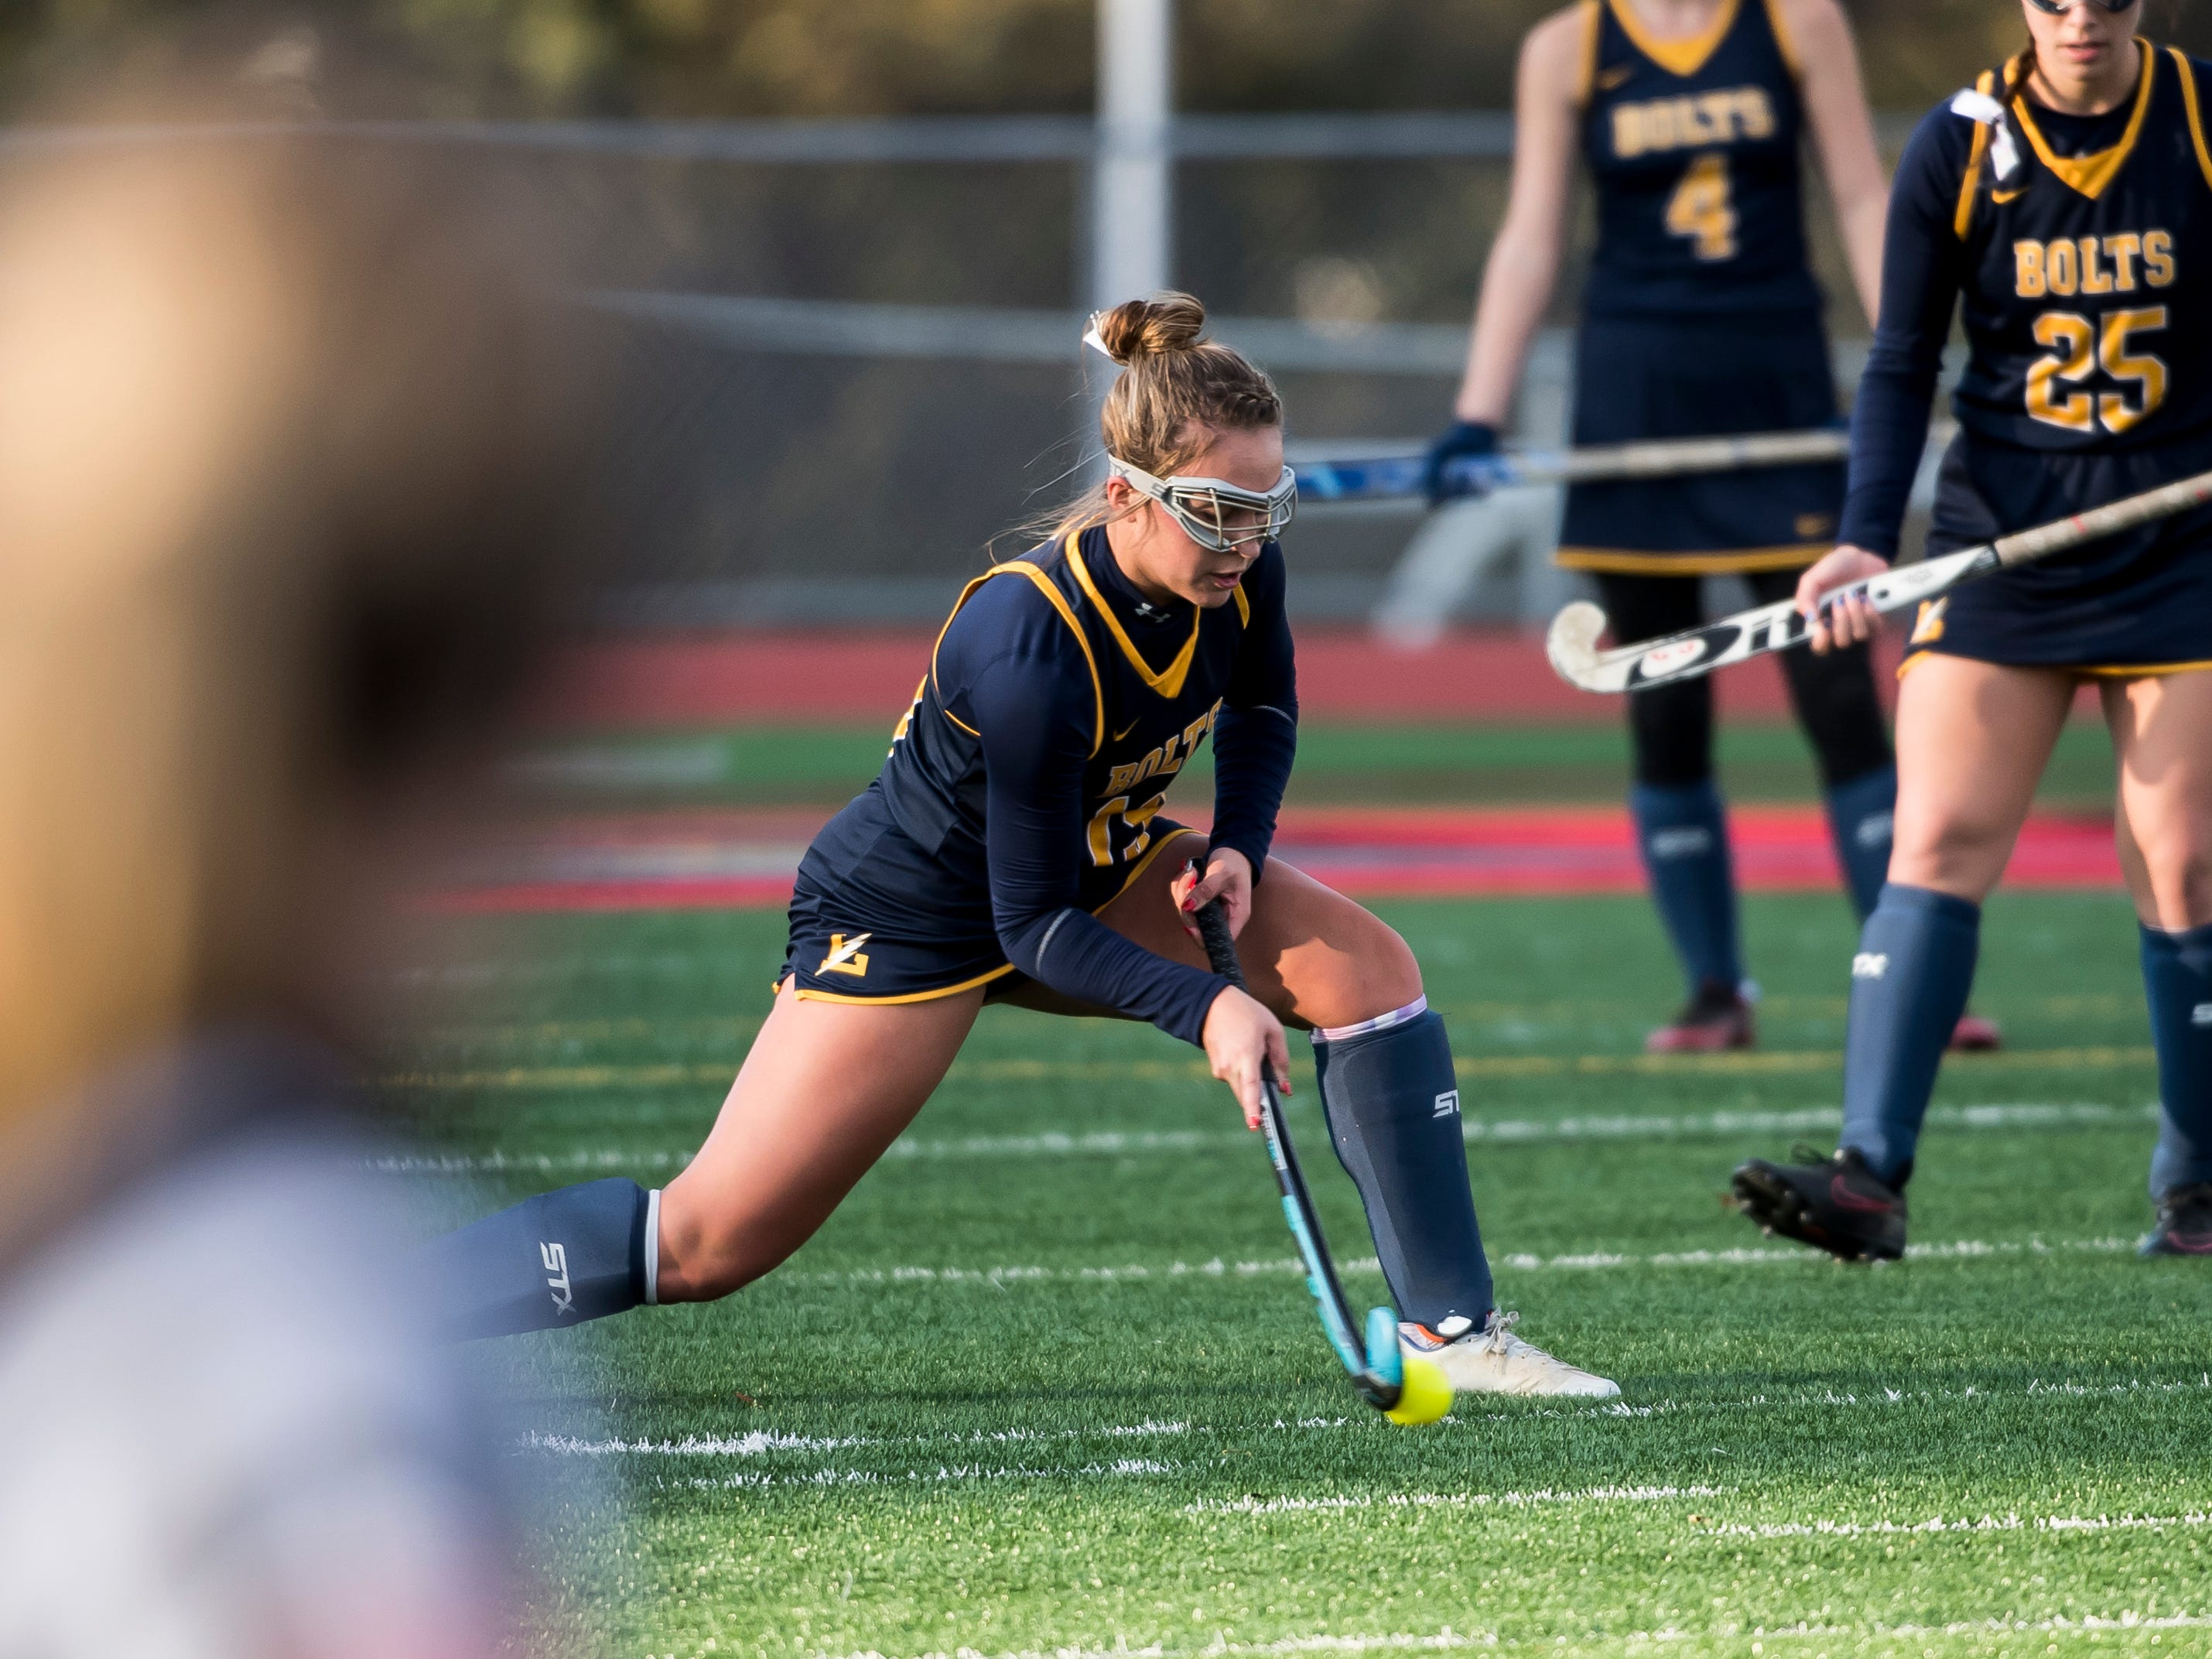 Littlestown's Sophie Bassler passes the ball during a PIAA District III first round game against Boiling Springs at Bermudian Springs High School on Wednesday, October 24, 2018. The Bolts fell 2-0.